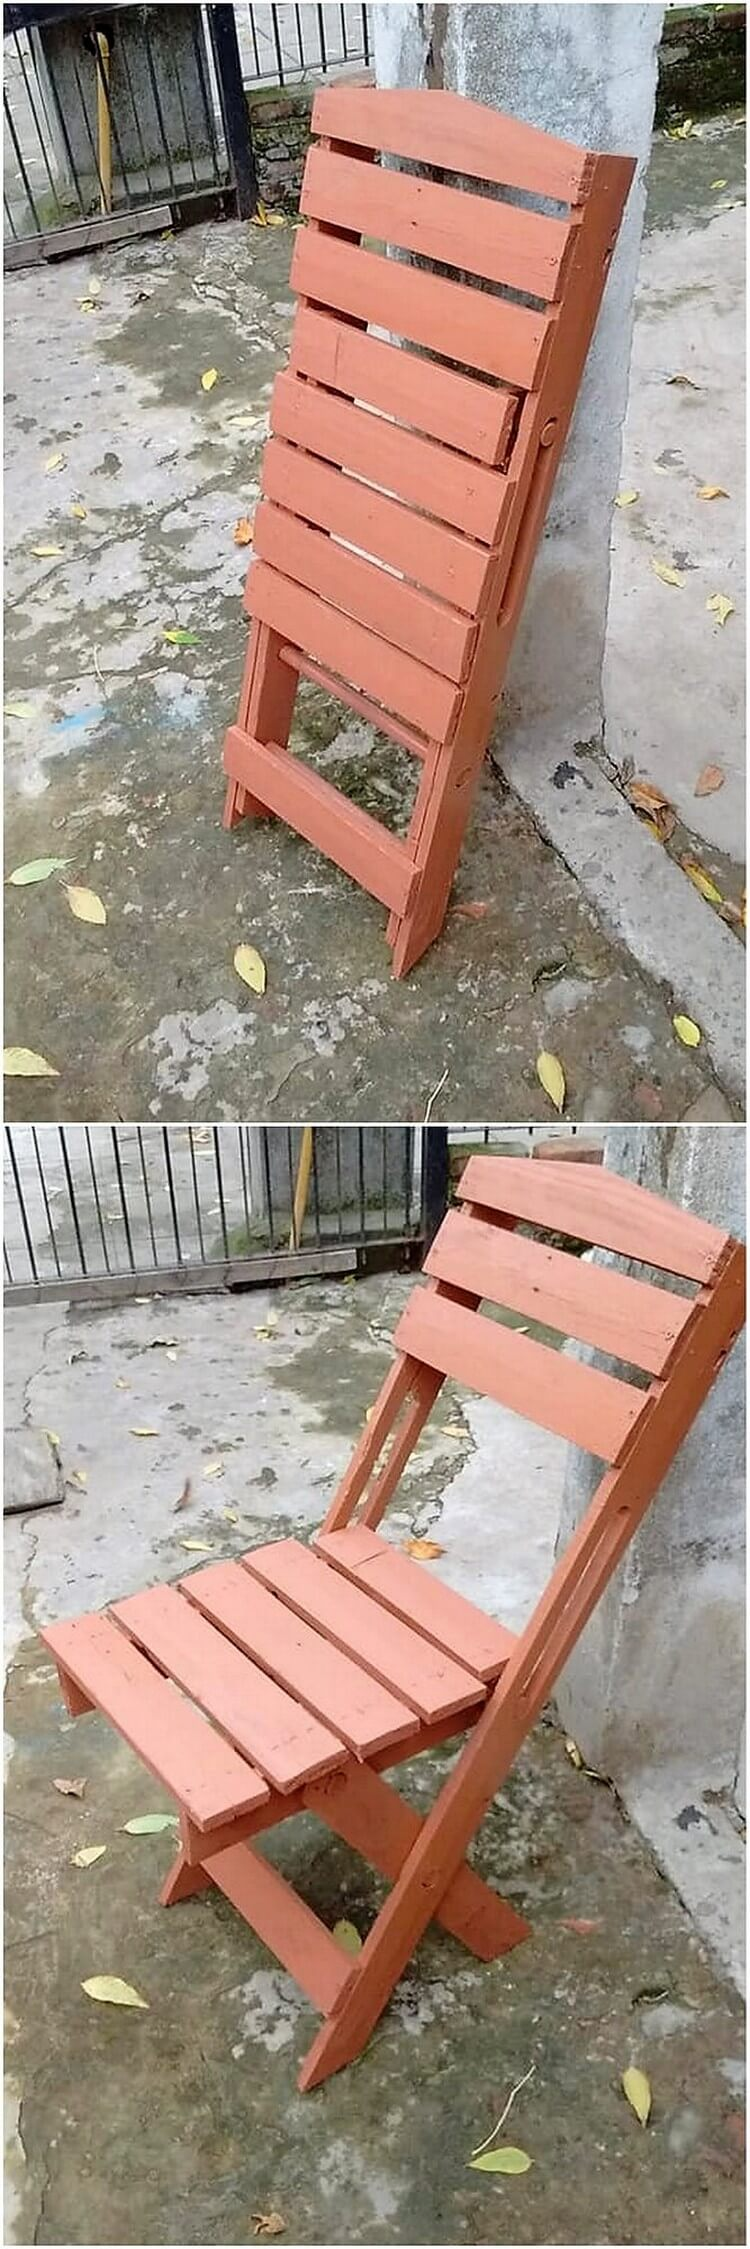 Pallet Folding Chair